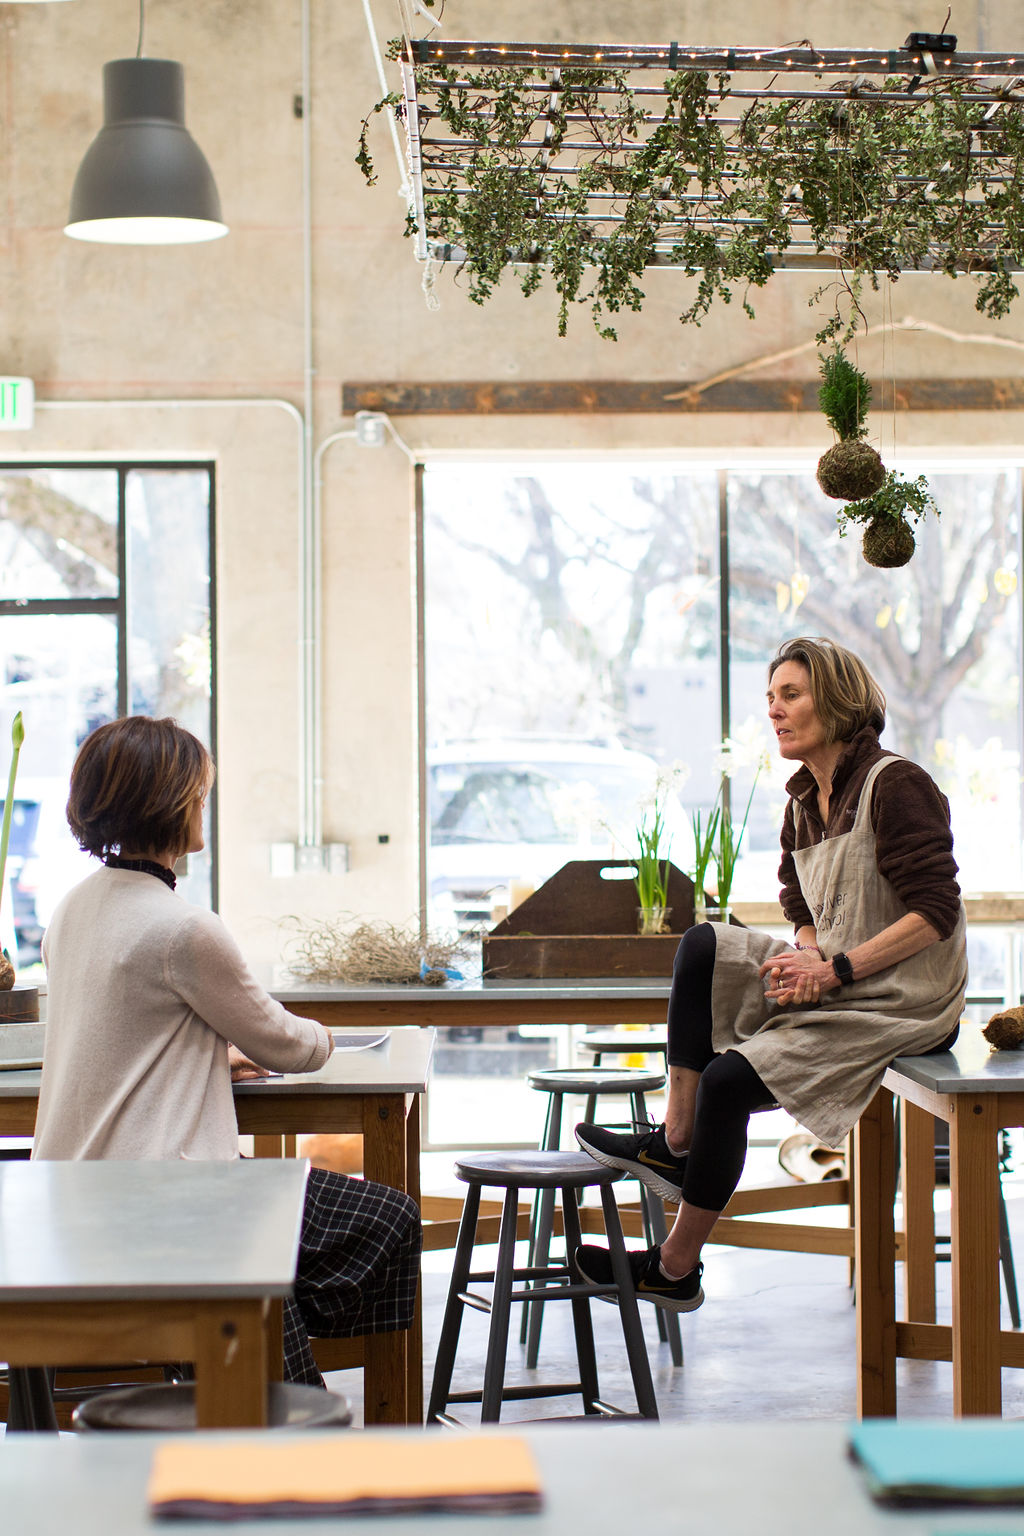 Dundee Butcher, Russian River Flowers, Floral Workshop, Floral Studio, Things to do in Healdsburg, Chateau Sonoma, Female Entrepreneurs, Floral Inspiration, Studio Inspiration, Minimalist Flowers